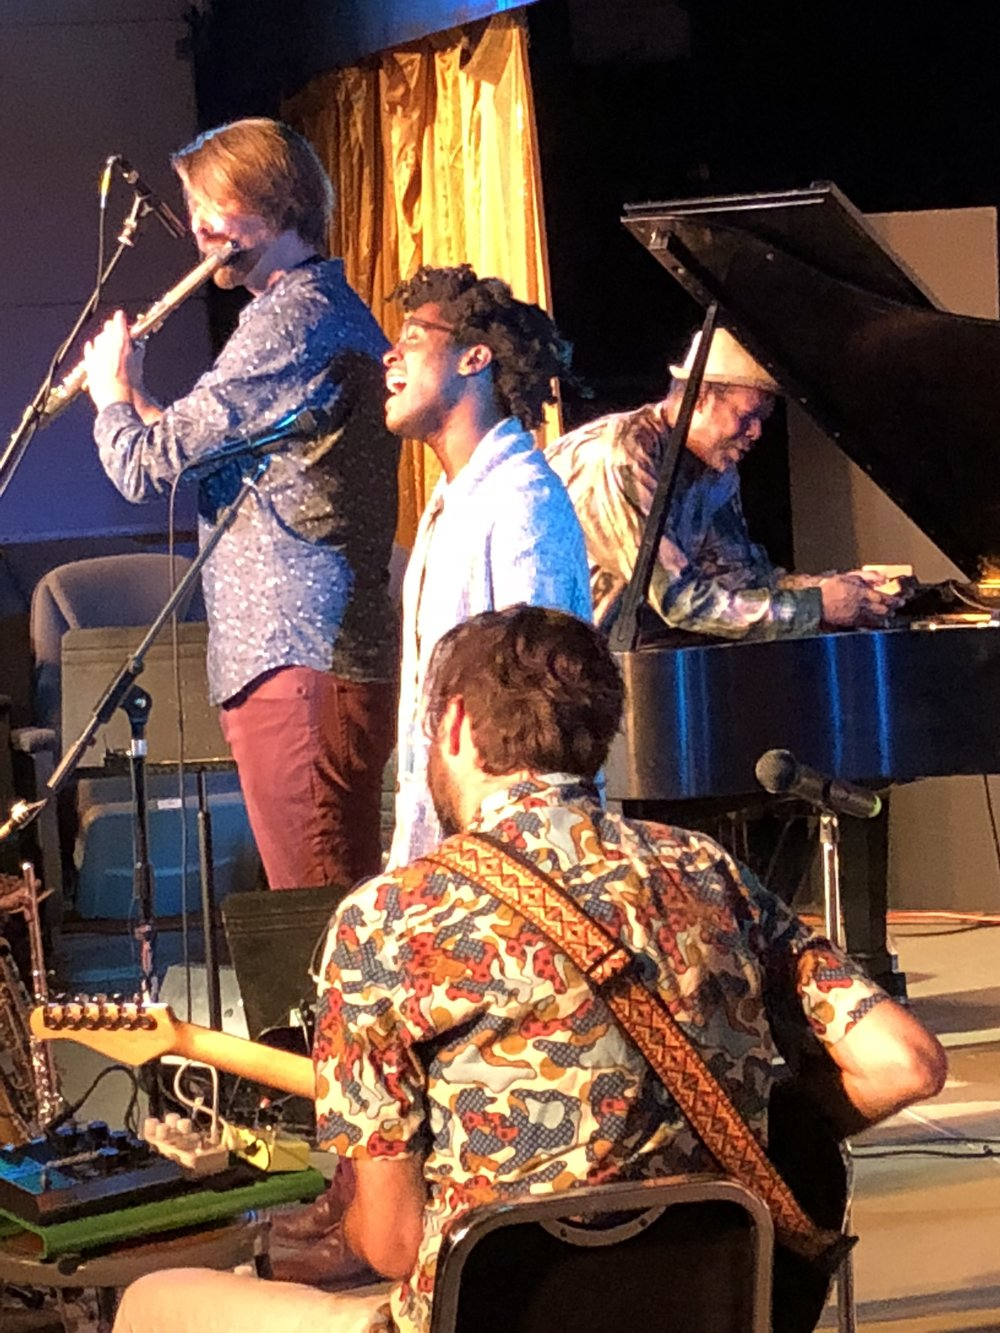 John C. Savage-flute, David Ornette Cherry-piano, Jimmie Herrod-vocals, and Mike Gamble-guitar (Andrew Jones-bass and Chris Johnedis-drums not pictured) at the Montavilla Jazz Fesitval, Portland, OR